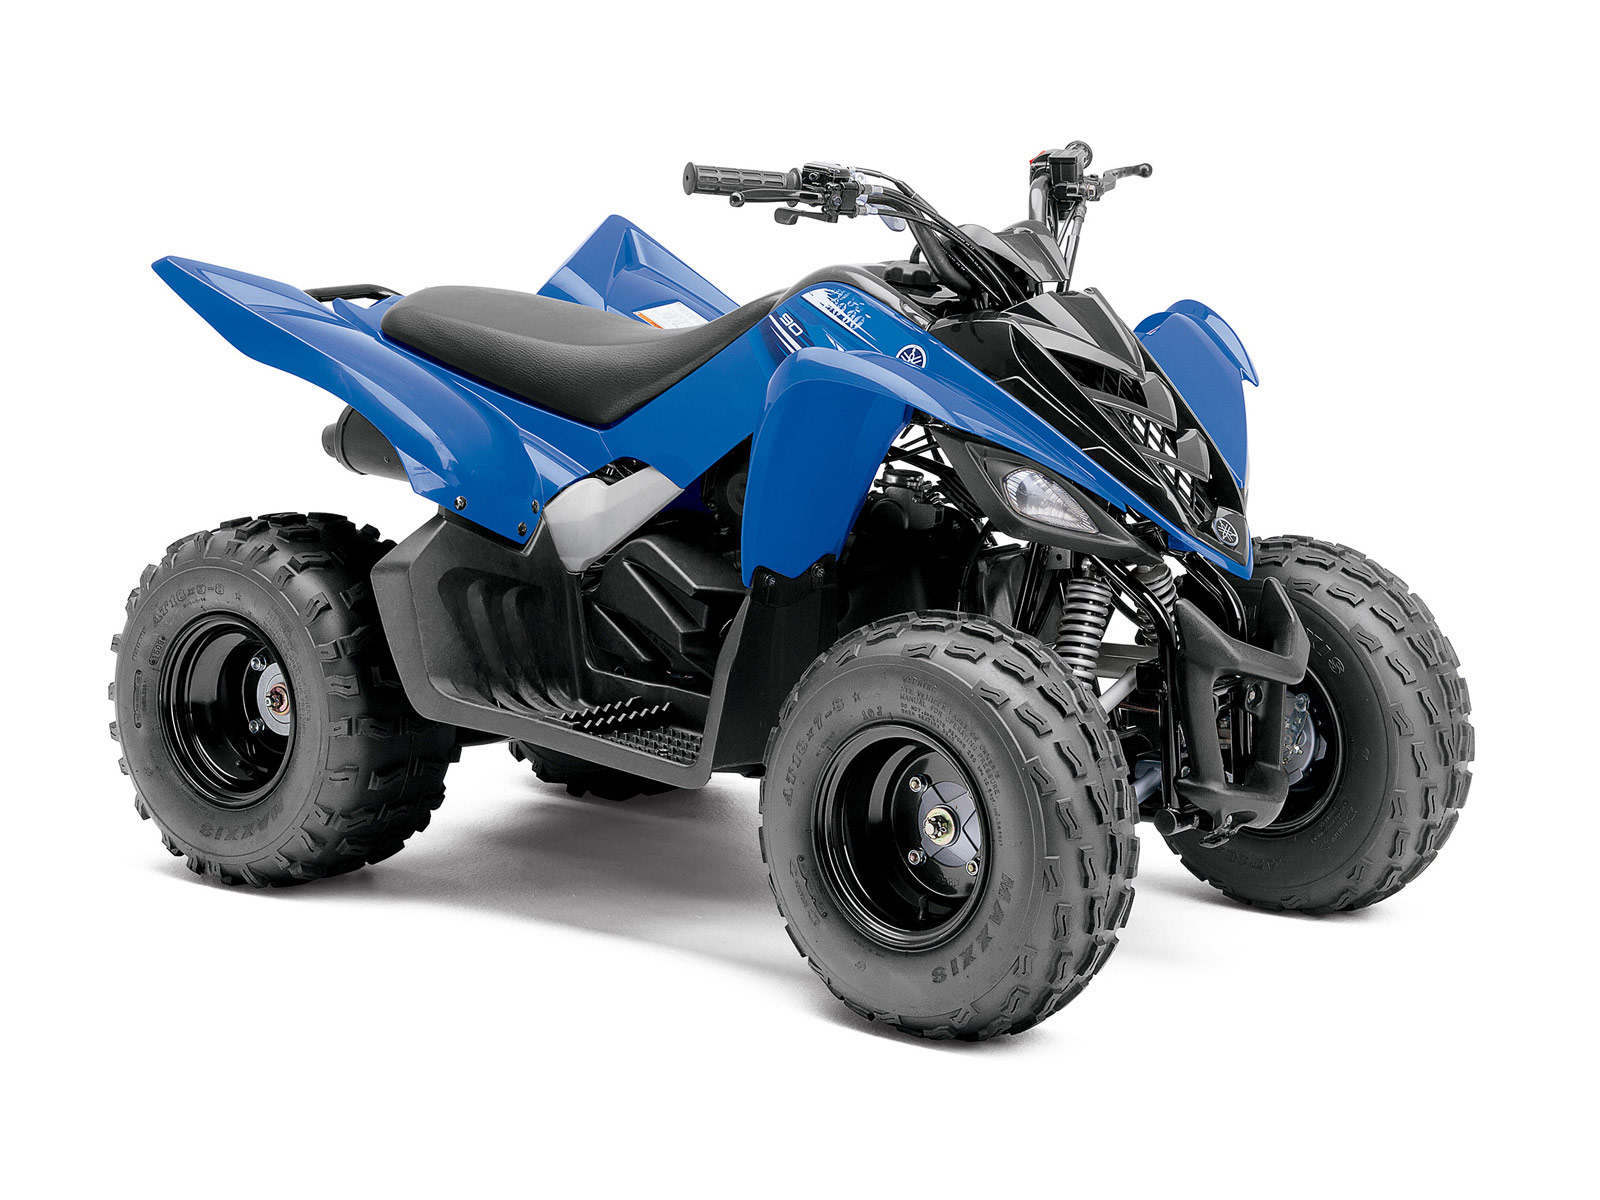 2012 YAMAHA Raptor 90 ATV wallpapers review specifications 1600x1200